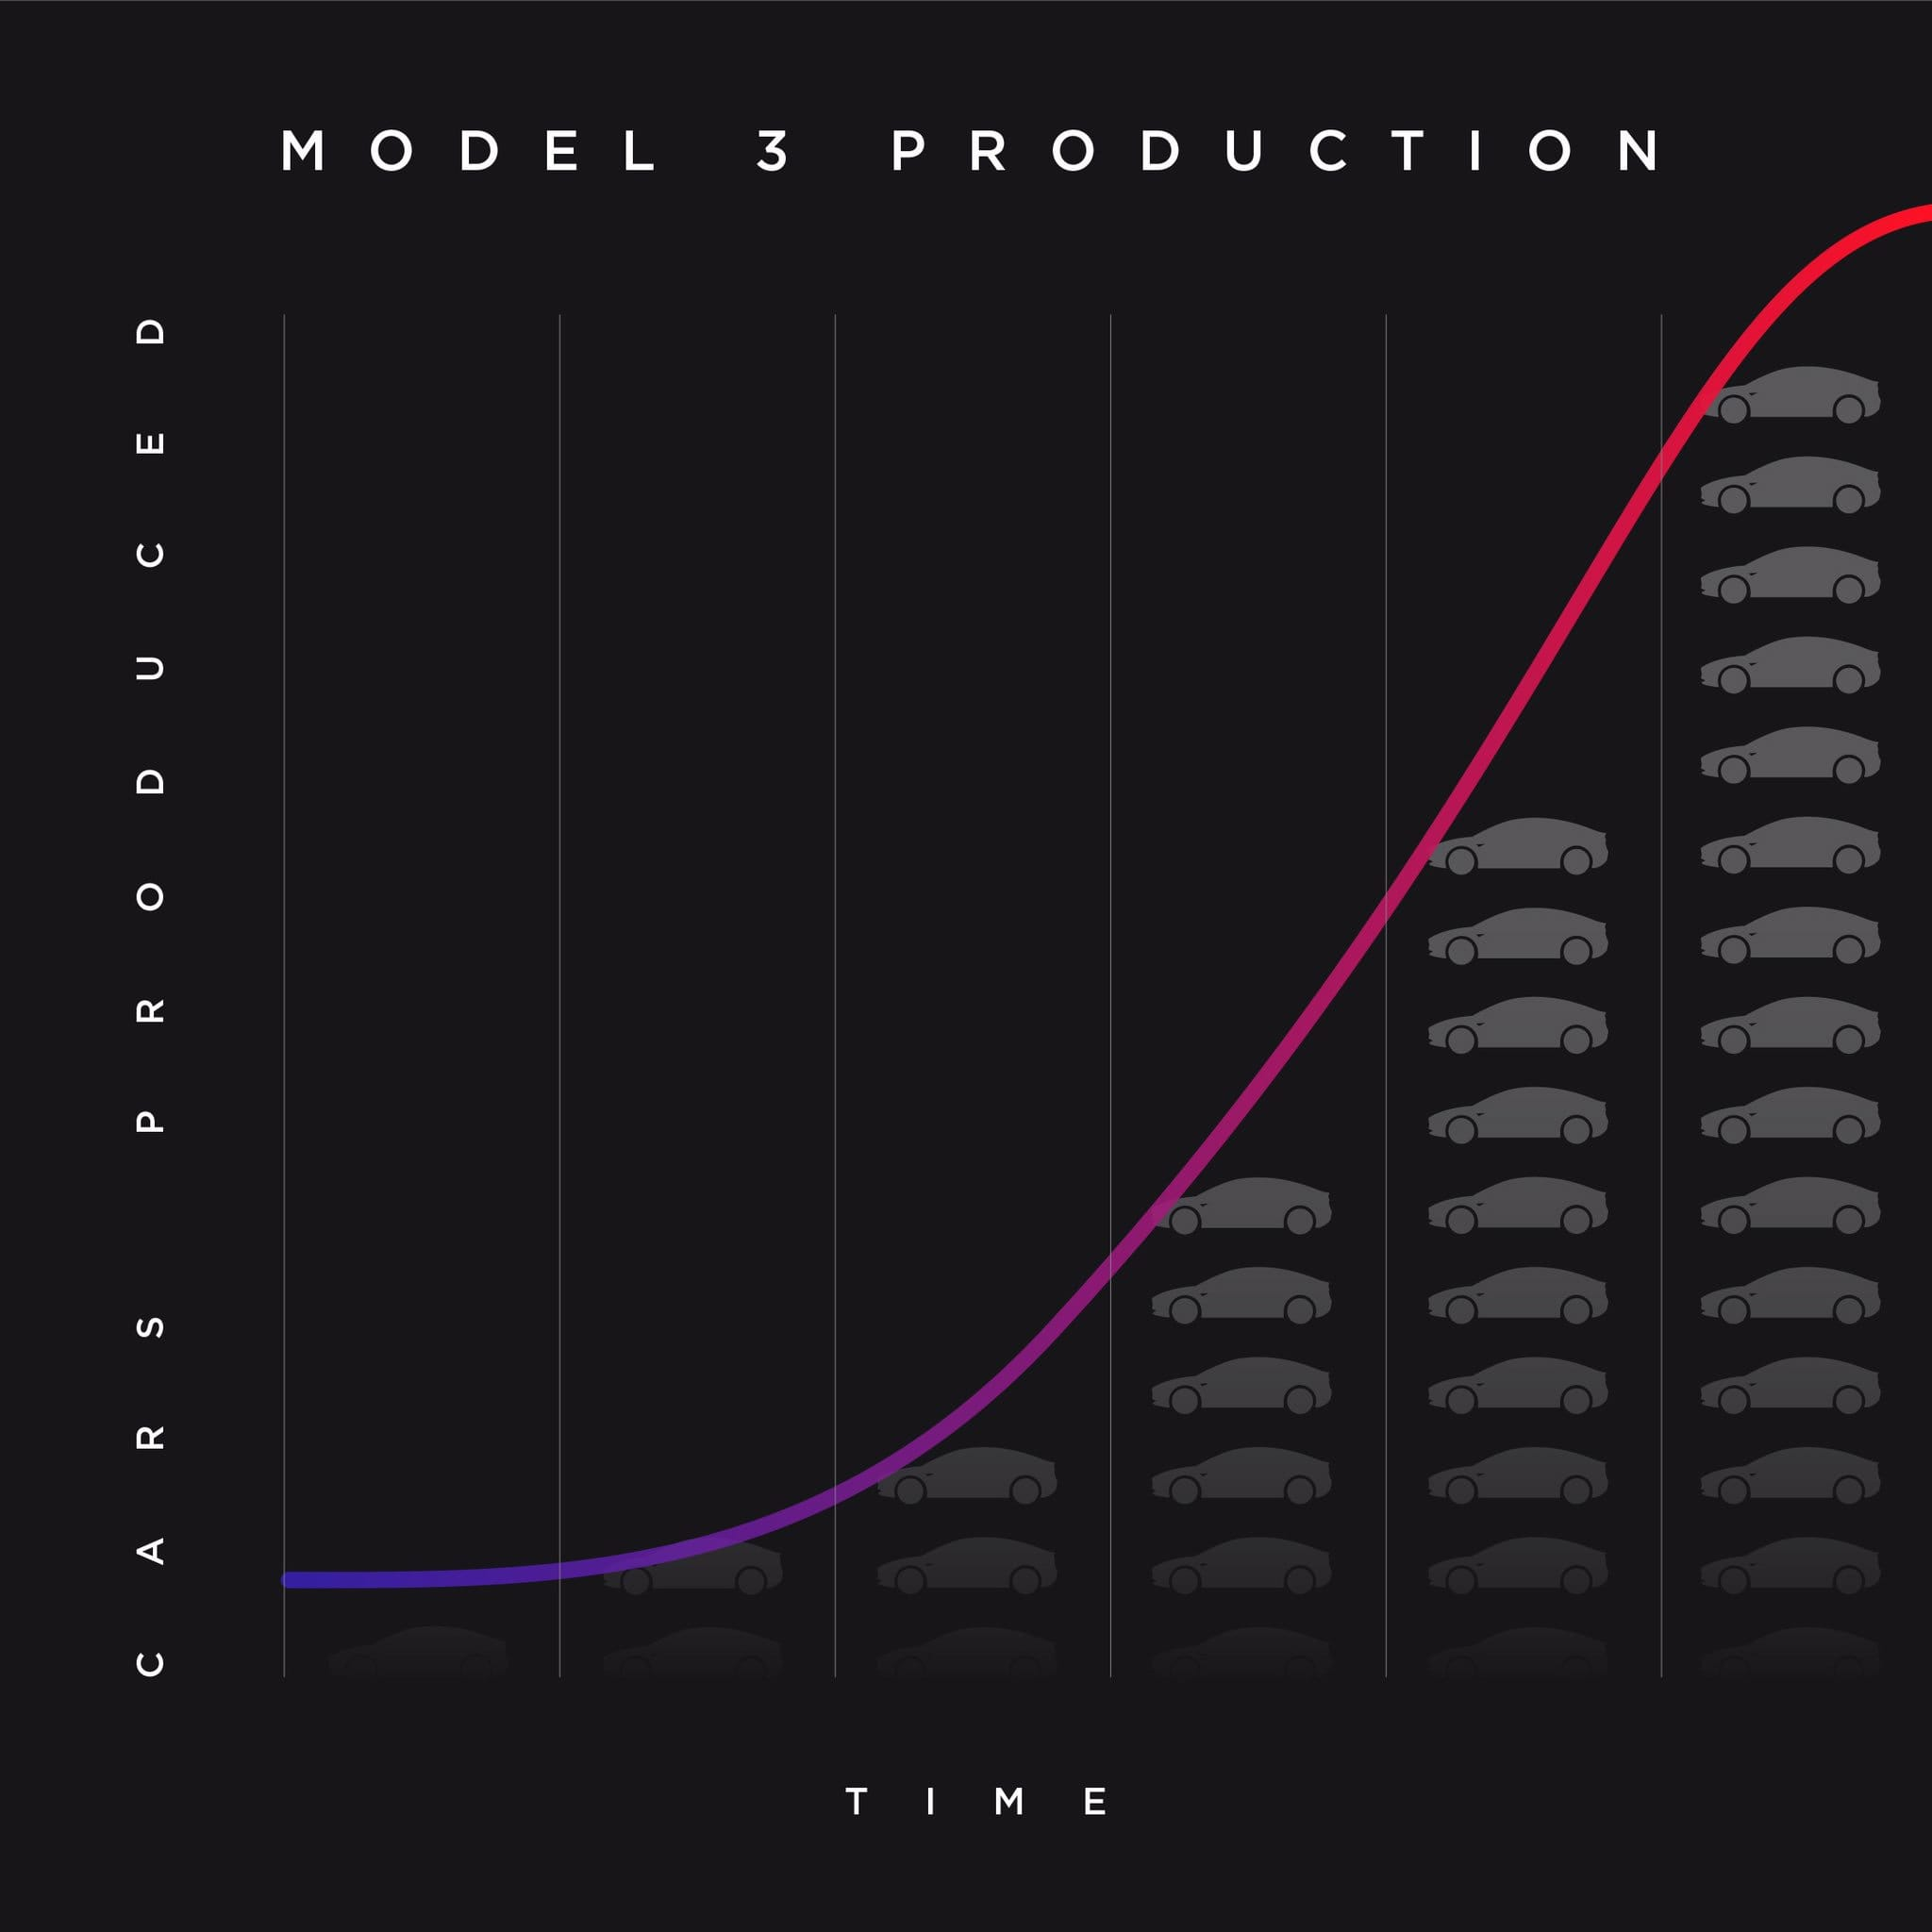 model 3 production rate